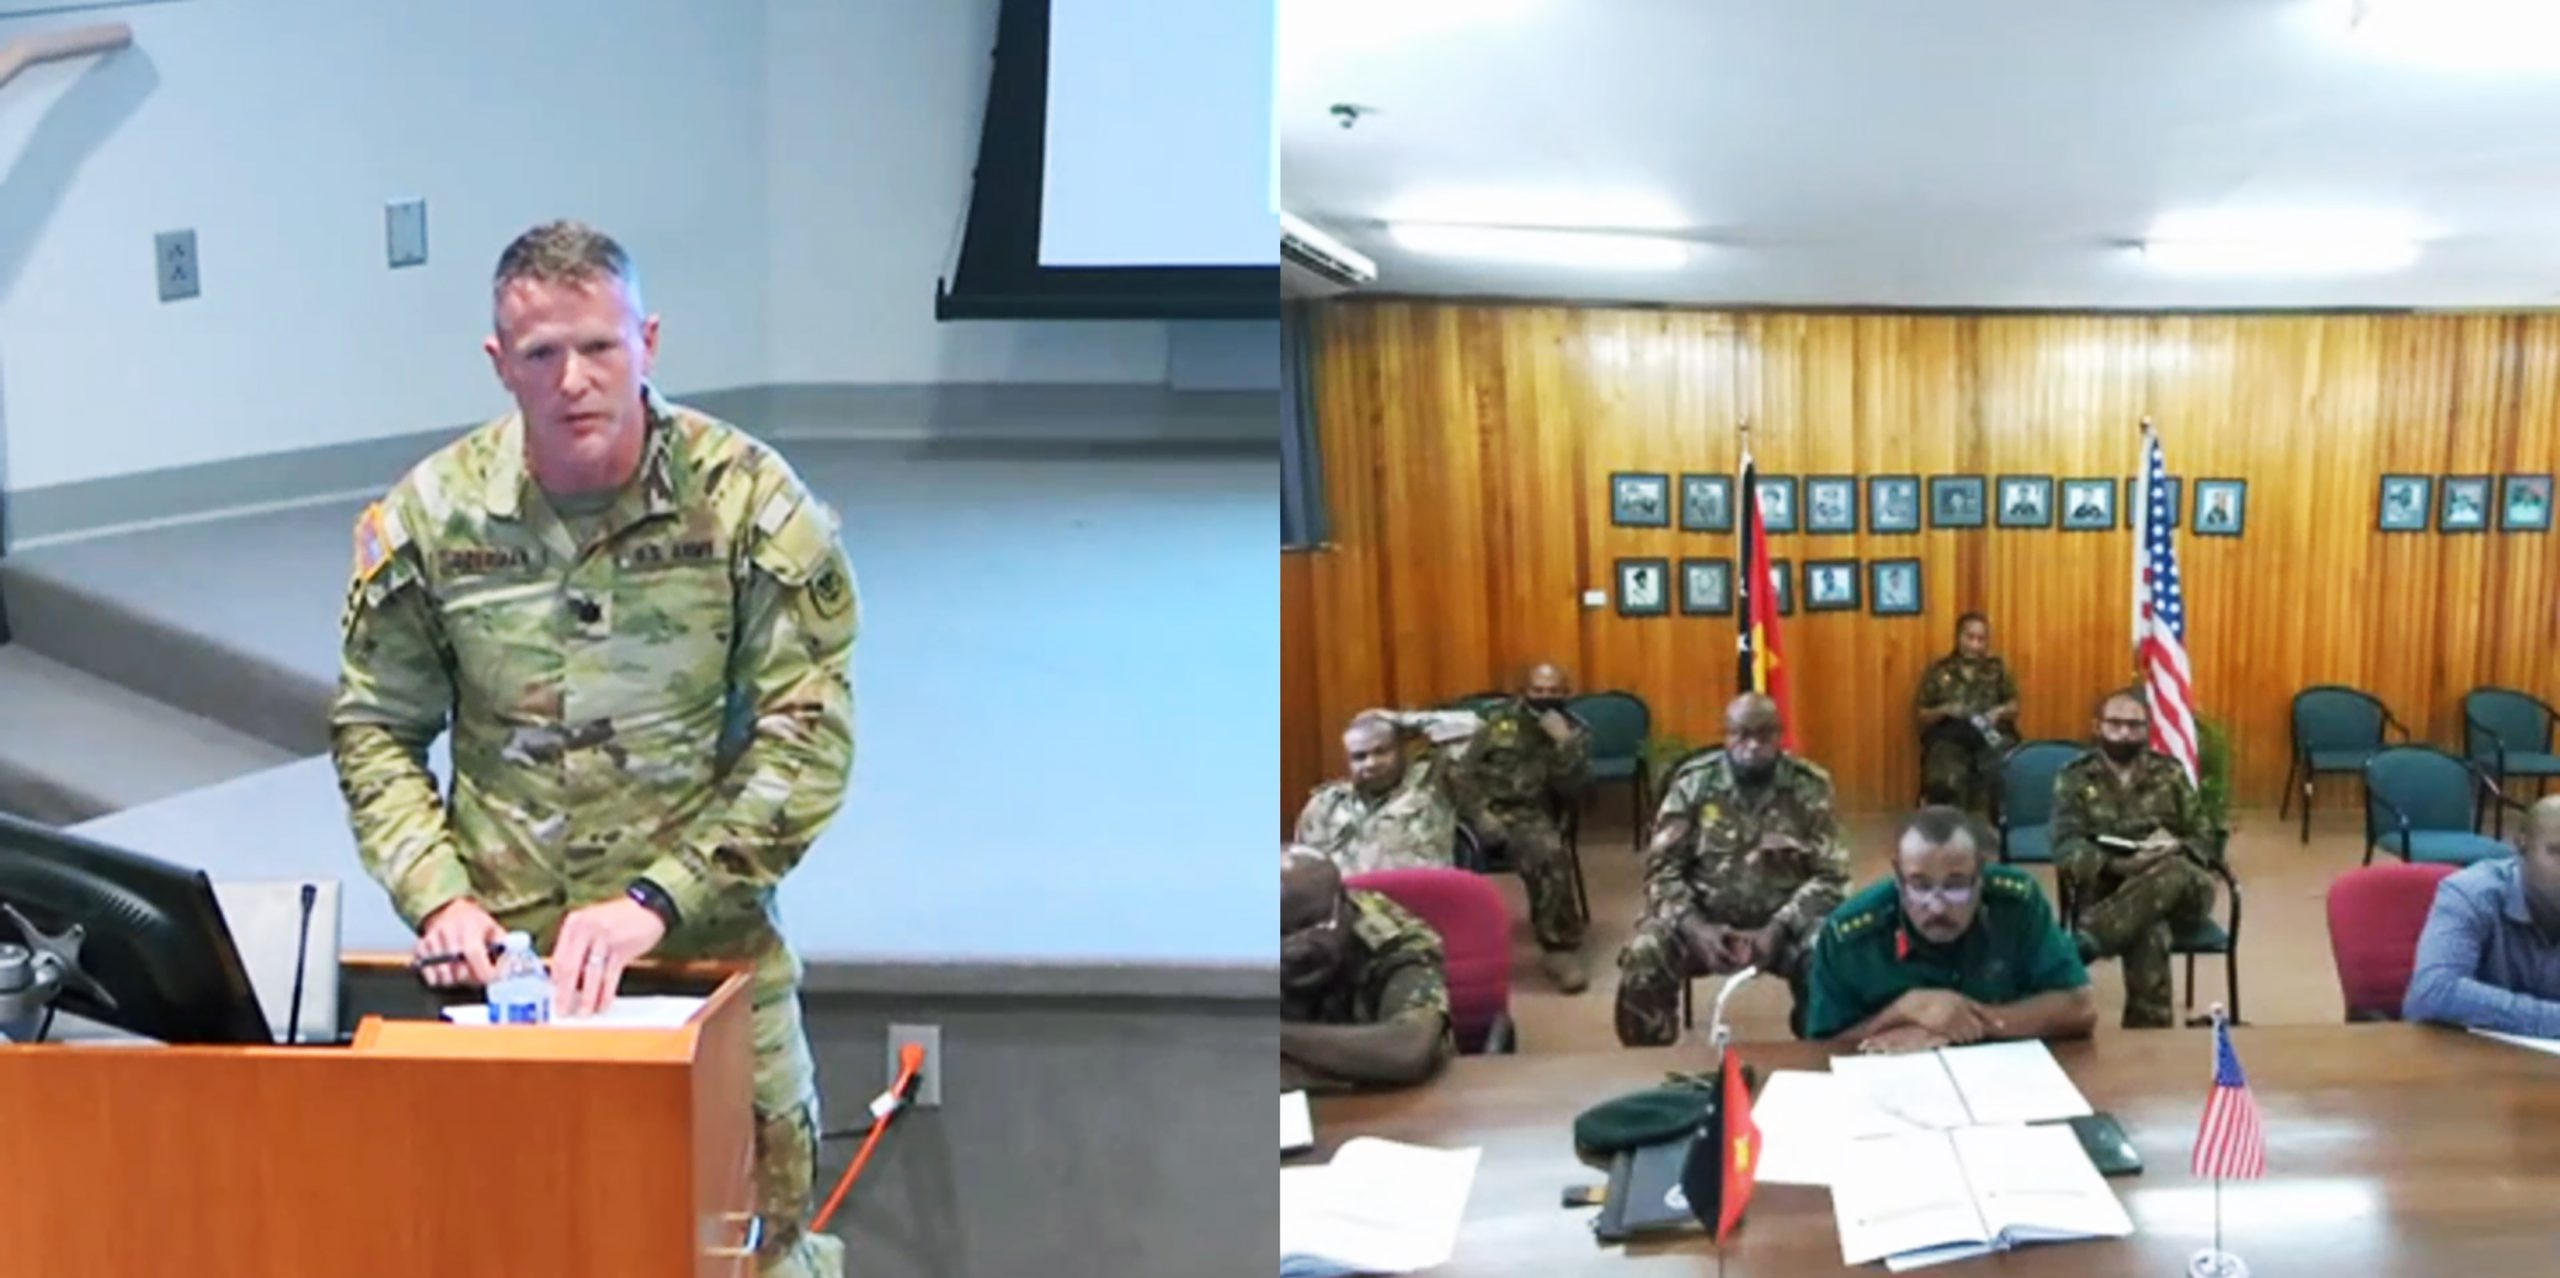 Lt. Col. Brion Aderman, Wisconsin National Guard director of domestic operations, discussing humanitarian assistance and disaster response practices, and domestic operations, with members of the Papua New Guinea Defense Force May 26 during a three-day State Partnership Program workshop with Papua New Guinea in Witmer Hall at Joint Force Headquarters in Madison, Wis. The State Partnership Program links individual states with armed forces of partner nations around the world to forge lasting cooperation, friendship, and mutually beneficial relationships. The 32nd Division, which included most of the Wisconsin National Guard at the time, fought the Japanese in Papua New Guinea during World War II. Screen capture